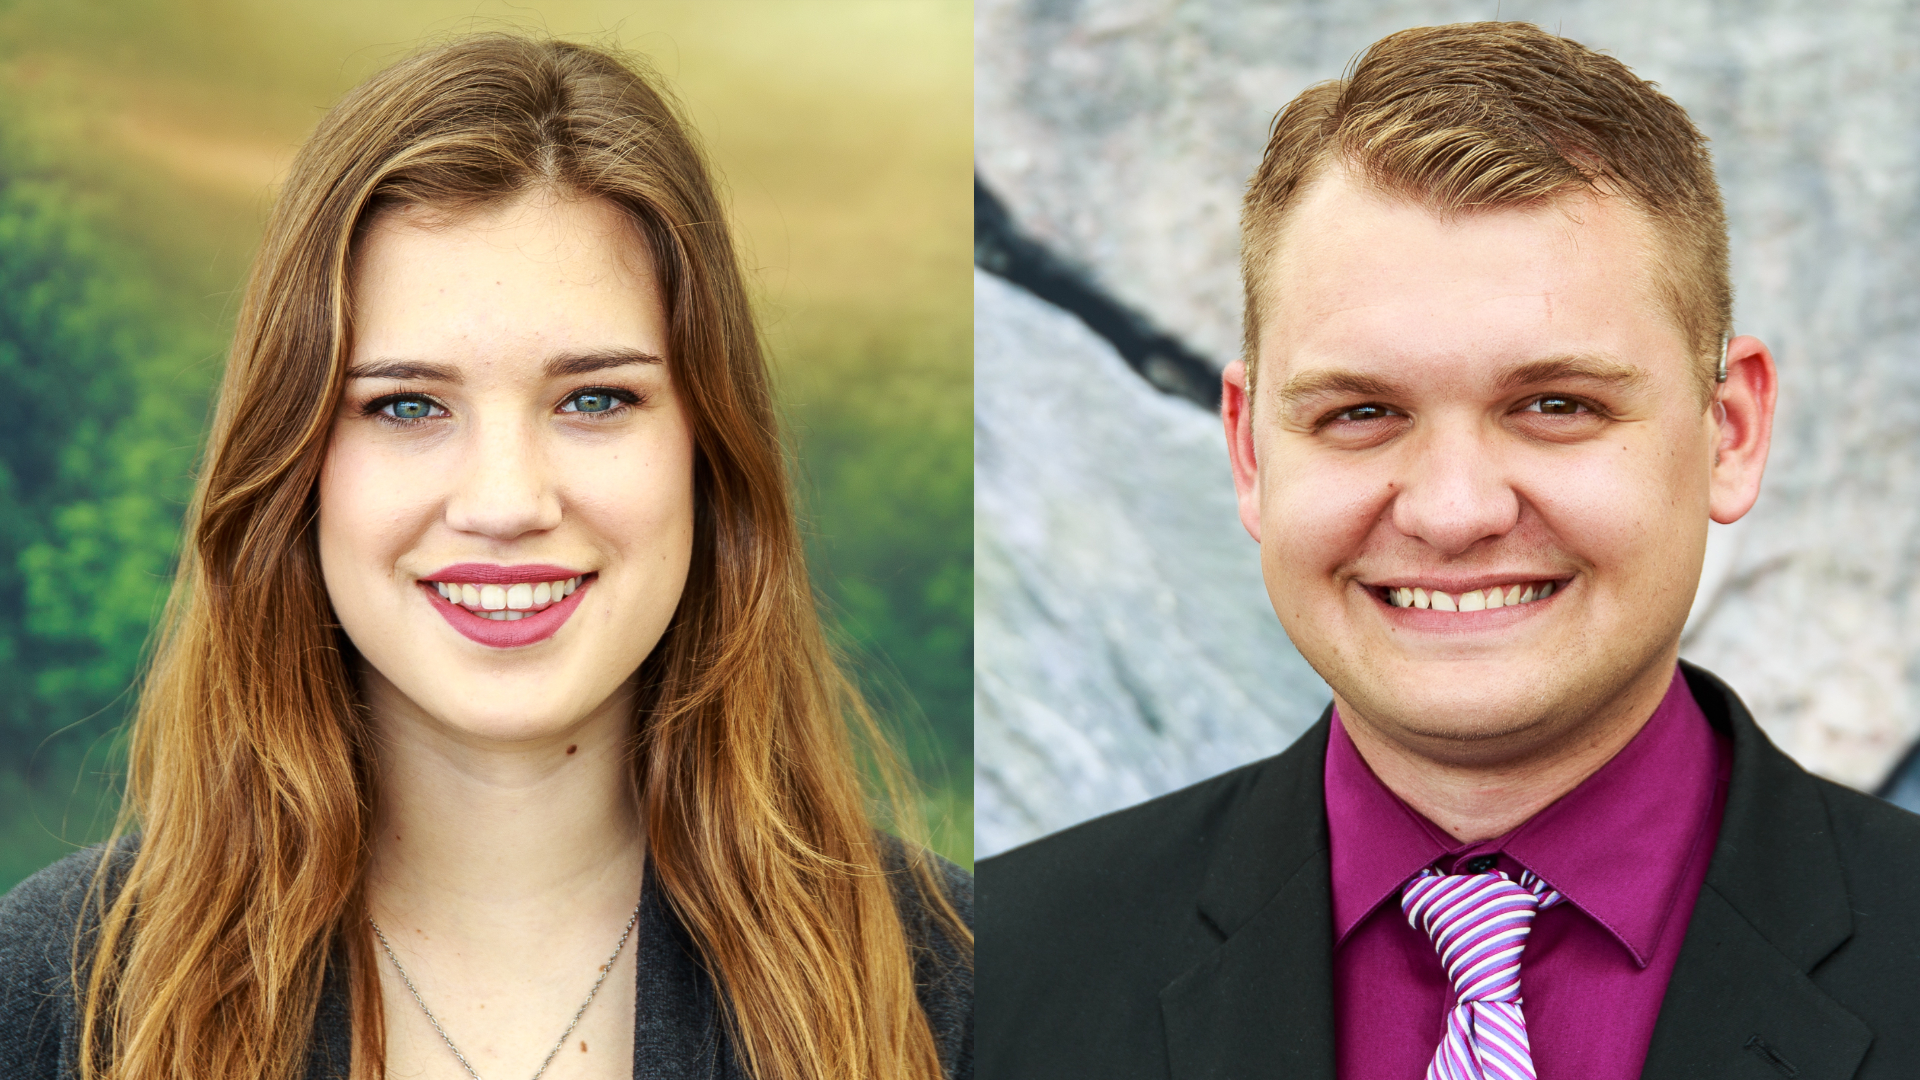 Two Meteorology Students Semifinalists in Broadcast Talent Competition